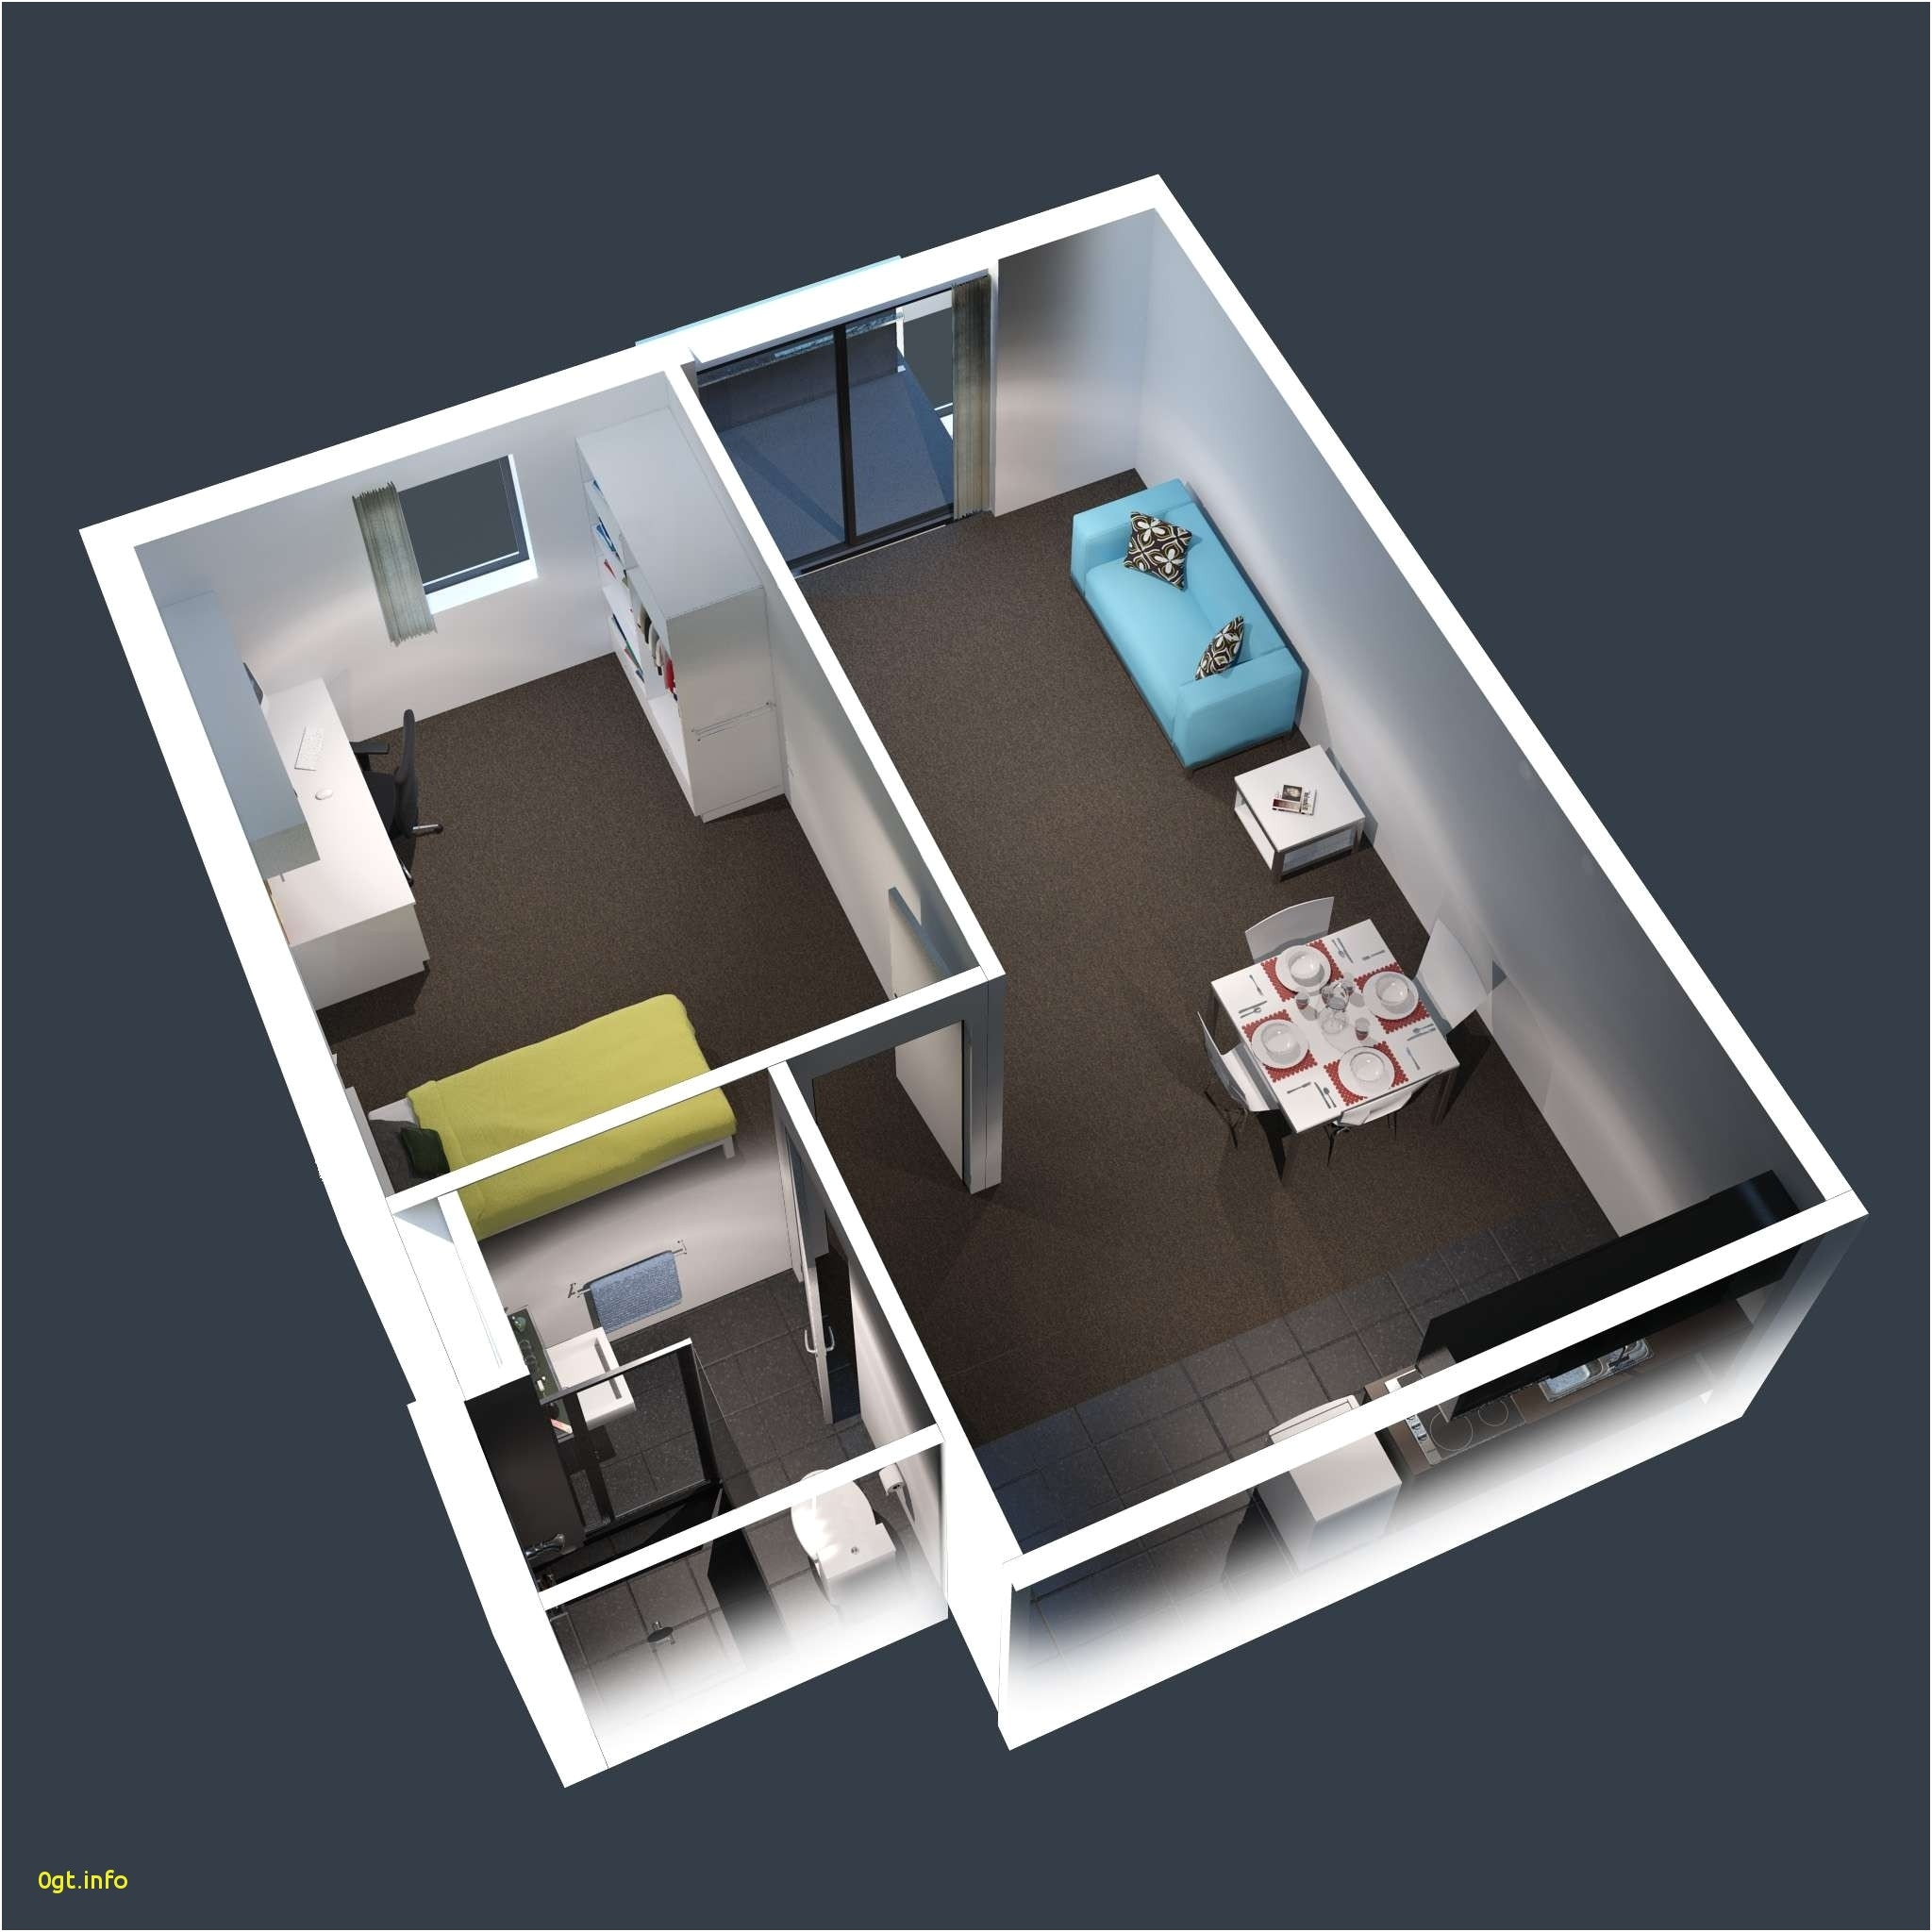 3 bedroom apartments rochester ny inspirational home design apartments in lansing mi floor plans for e